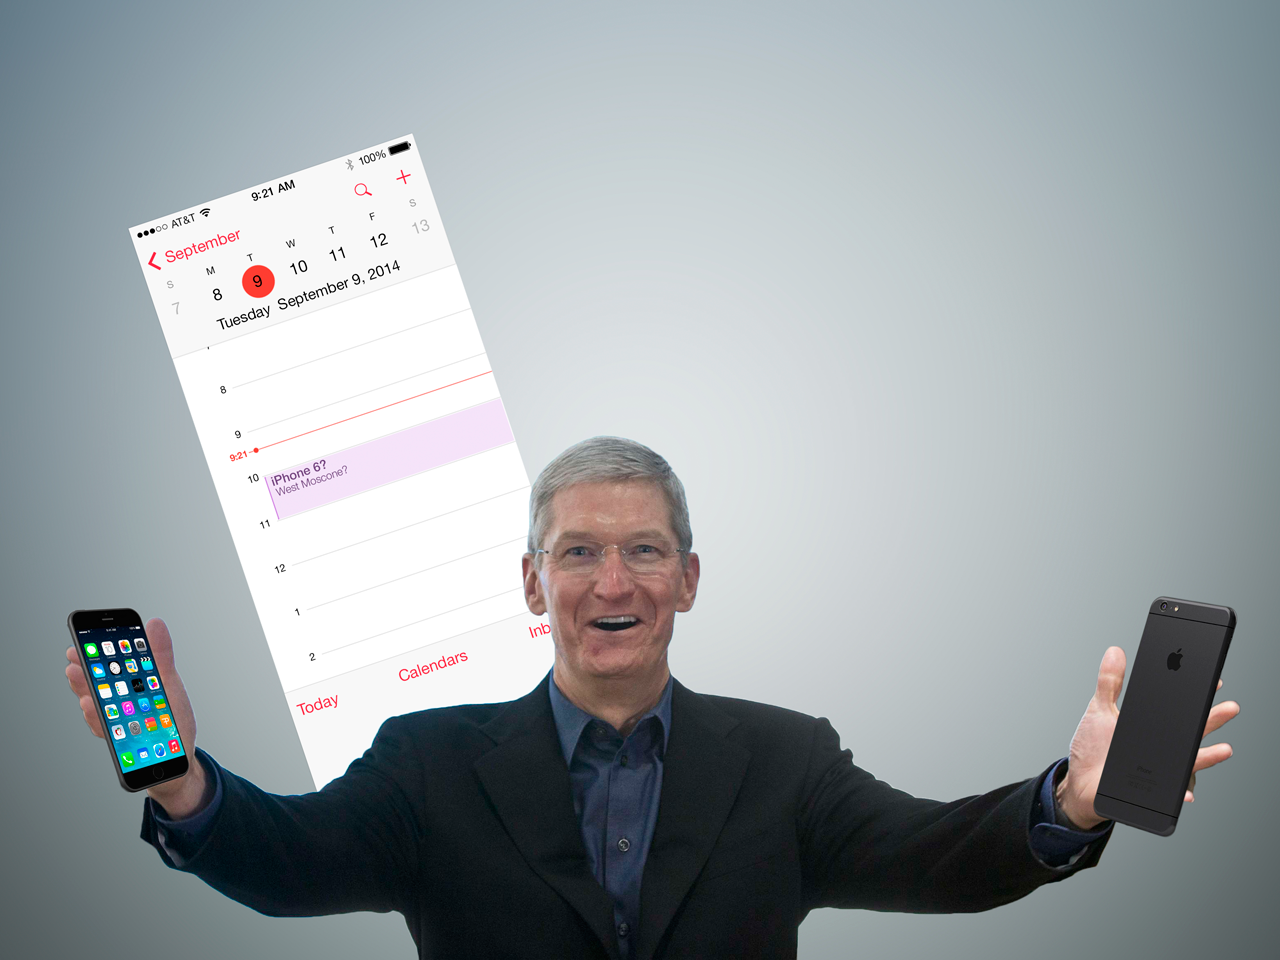 iPhone 6 (September 9 Tim Cook teaser, Recode 001)